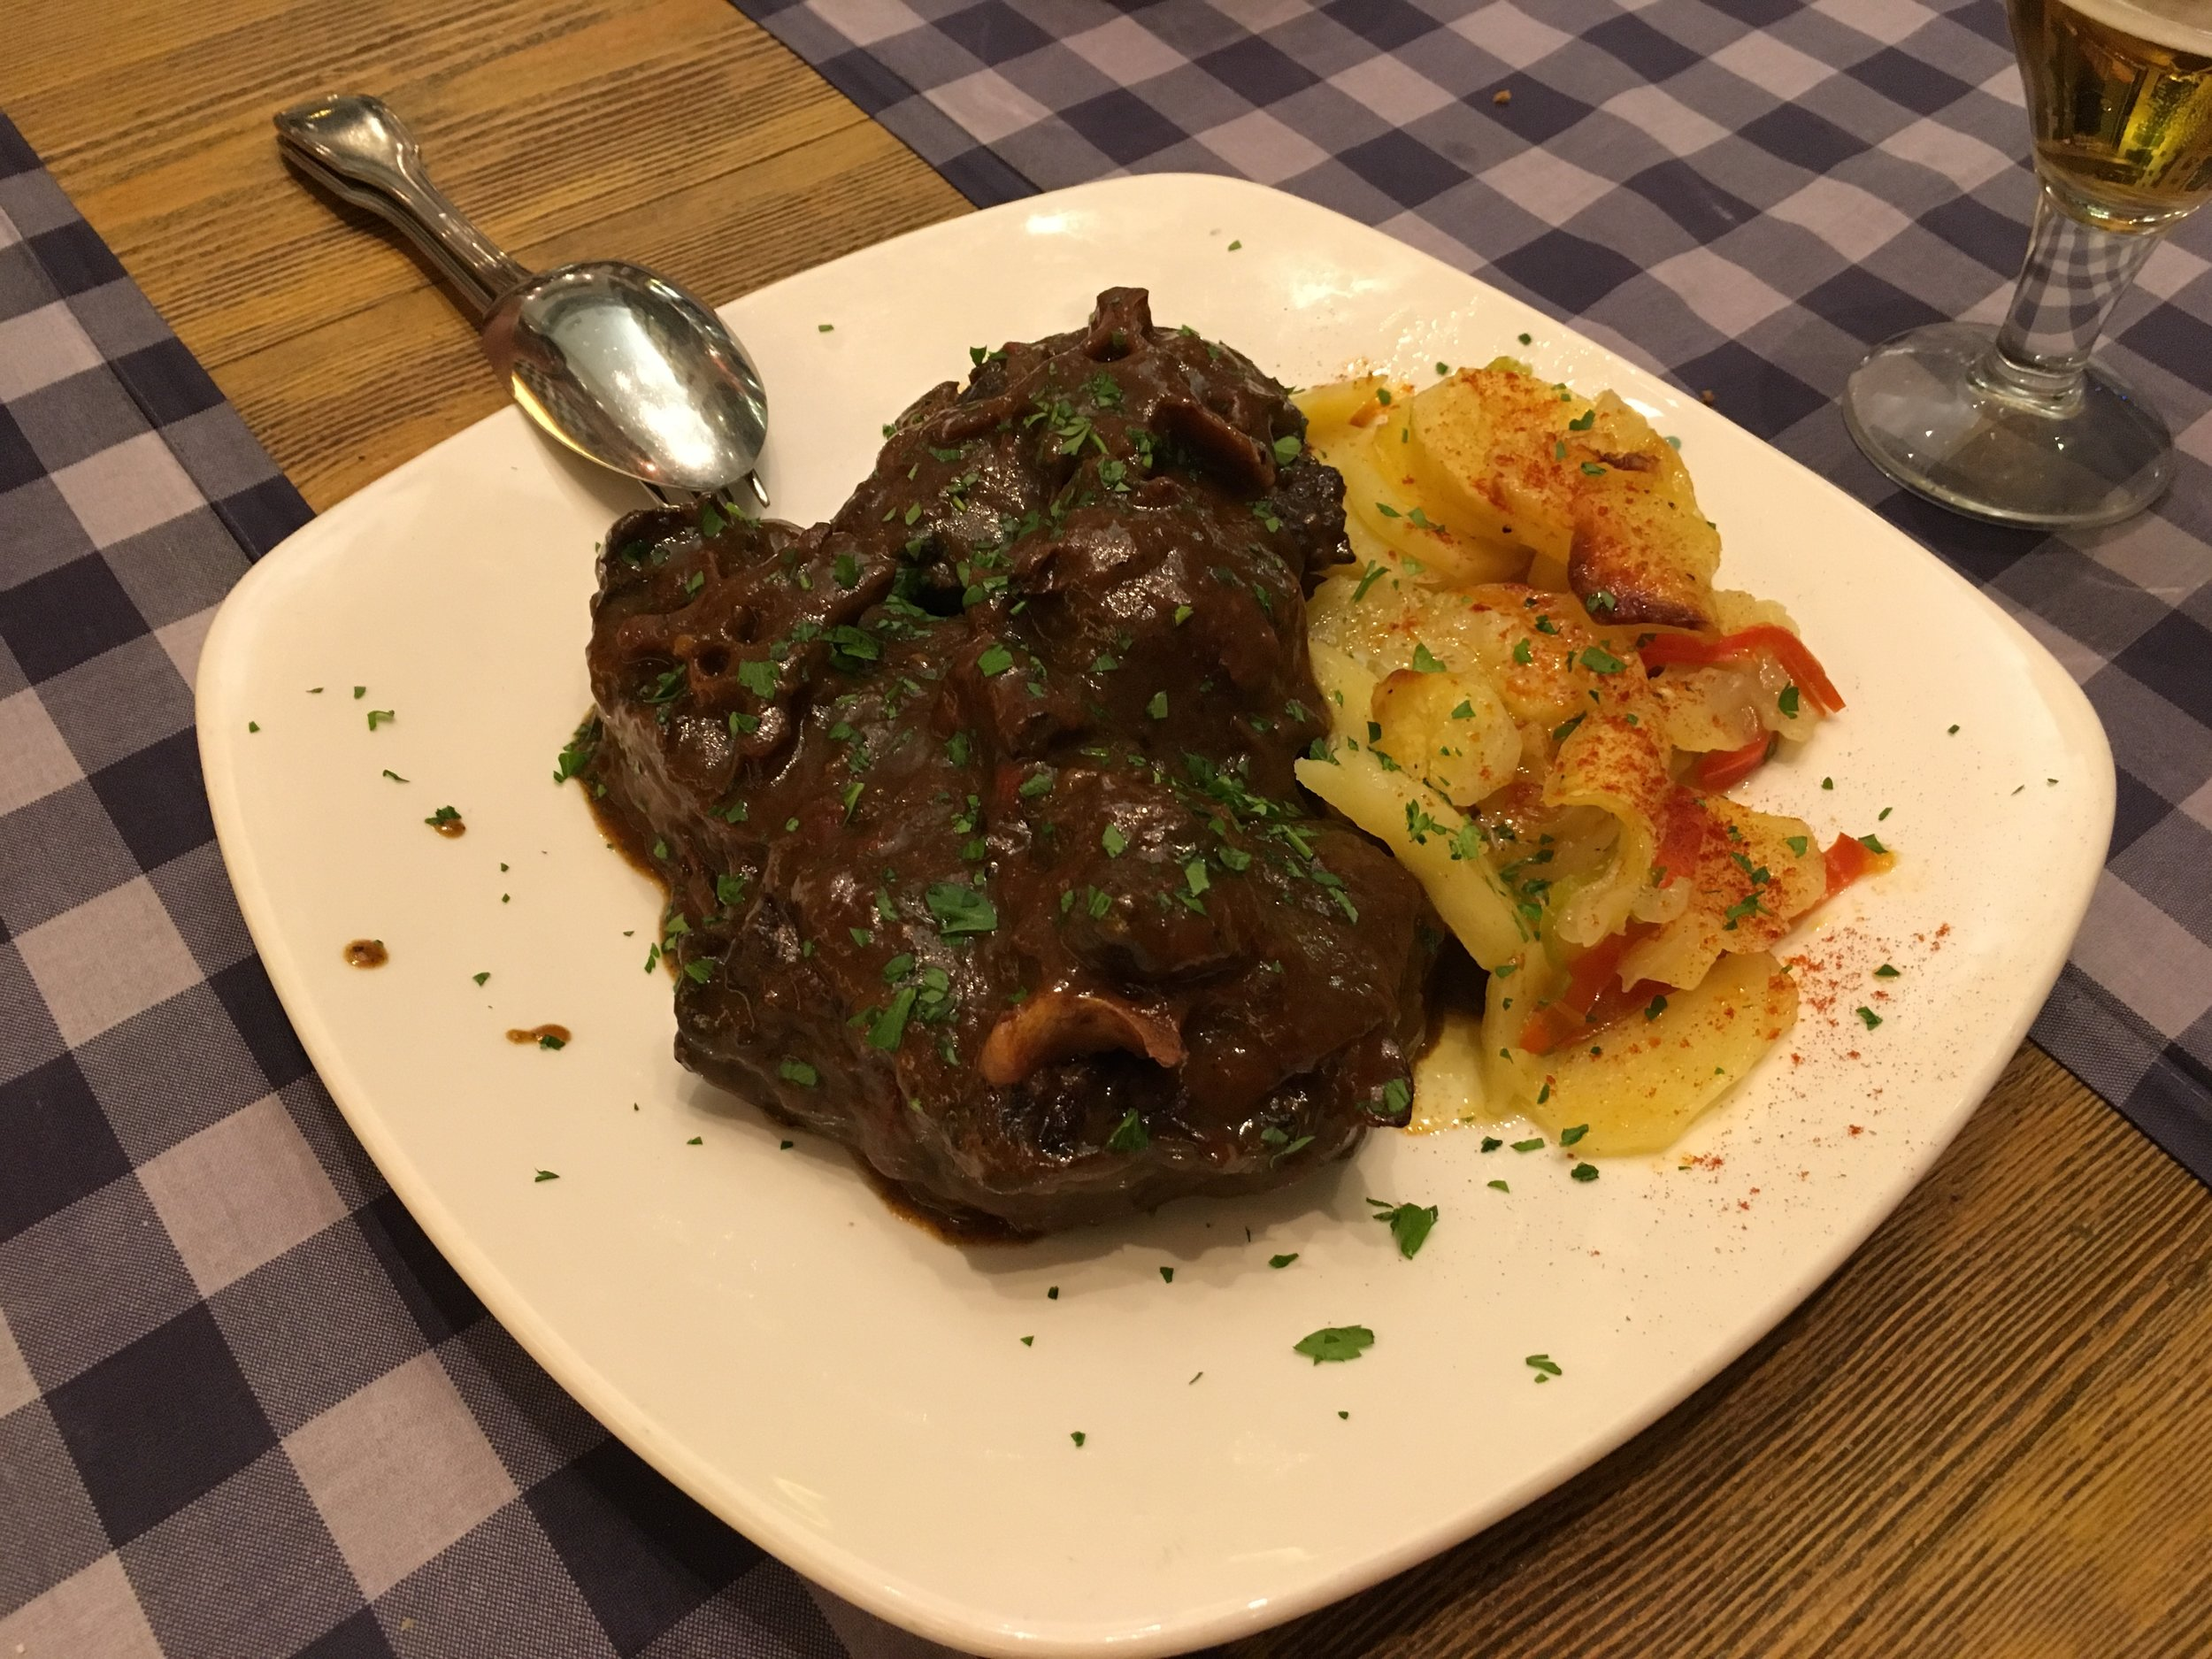 Oxtail in a red wine sauce, rabo de toro in spanish